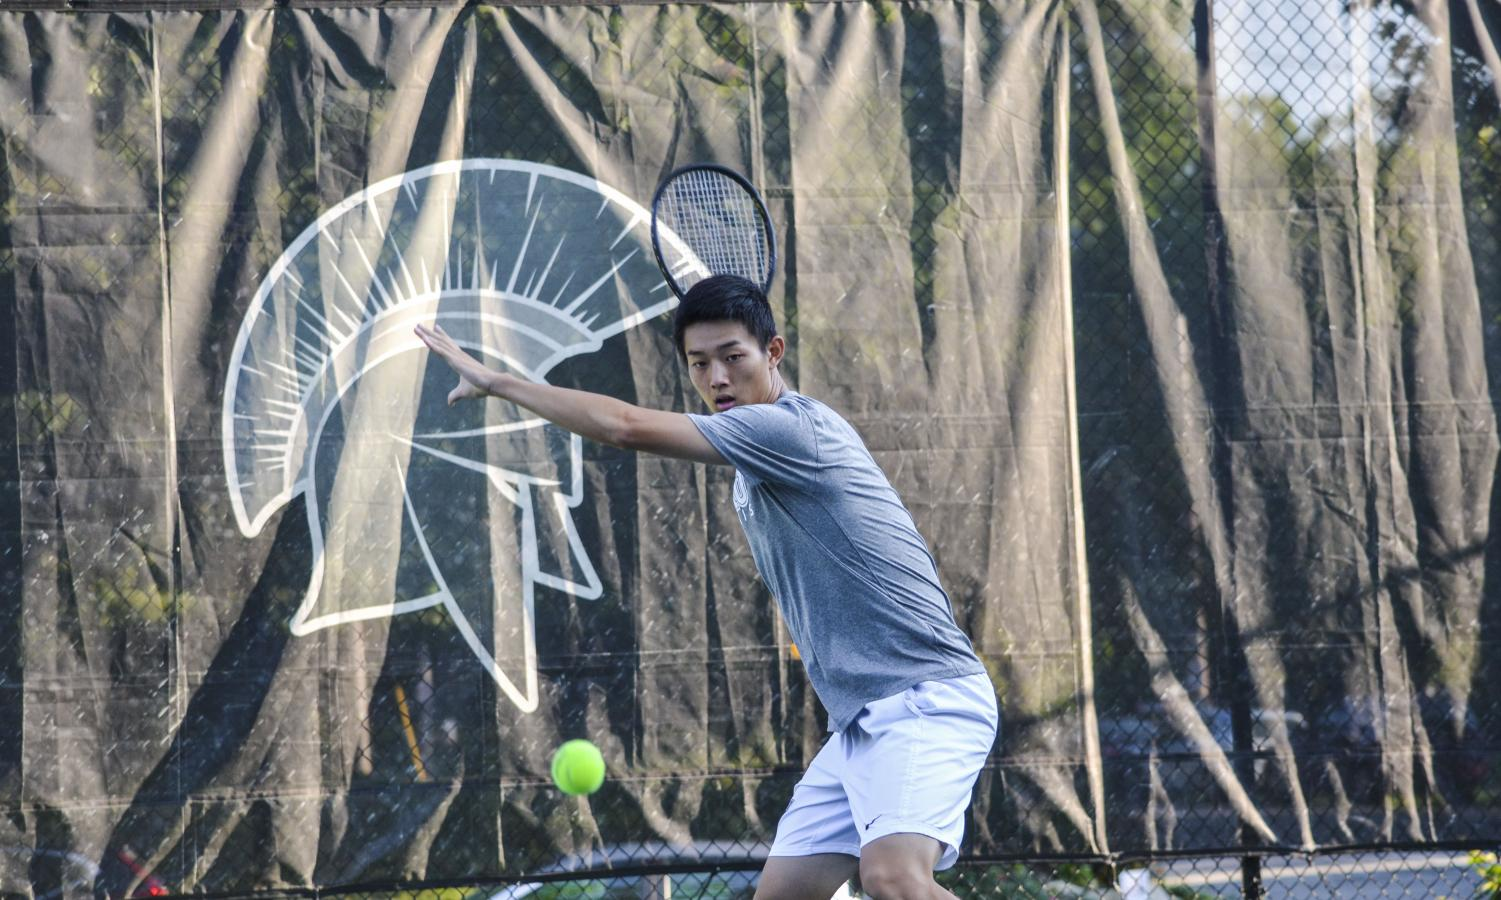 Second-year Spartan Matthew Chen maintains focus while competing at Carlton Courts.